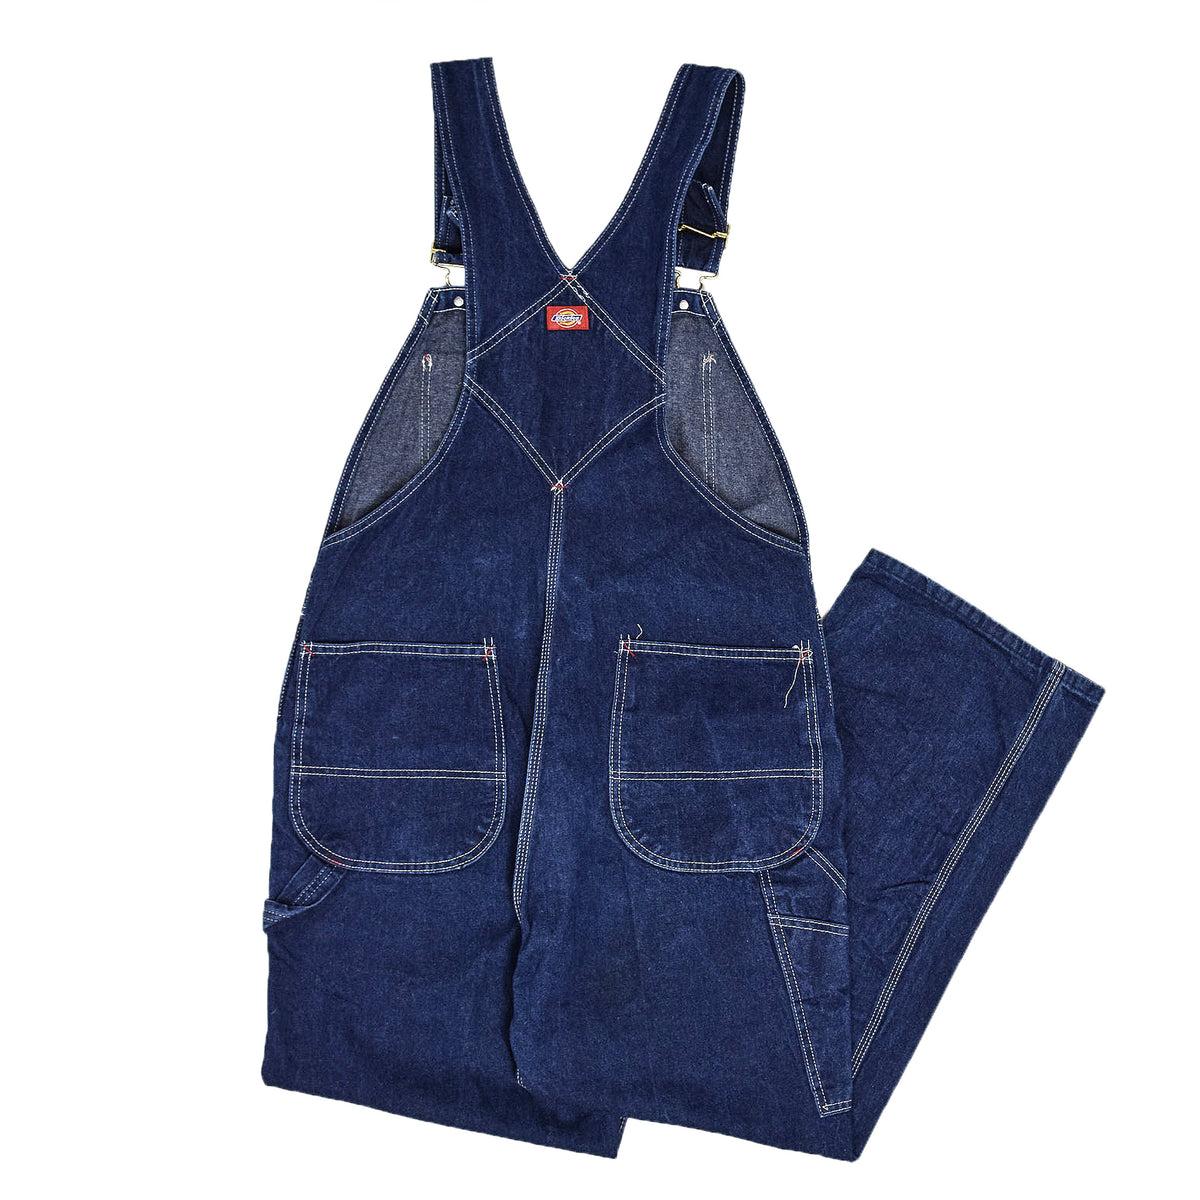 Vintage Dickies Denim Work Dungarees Blue Bib Overalls Trousers M back